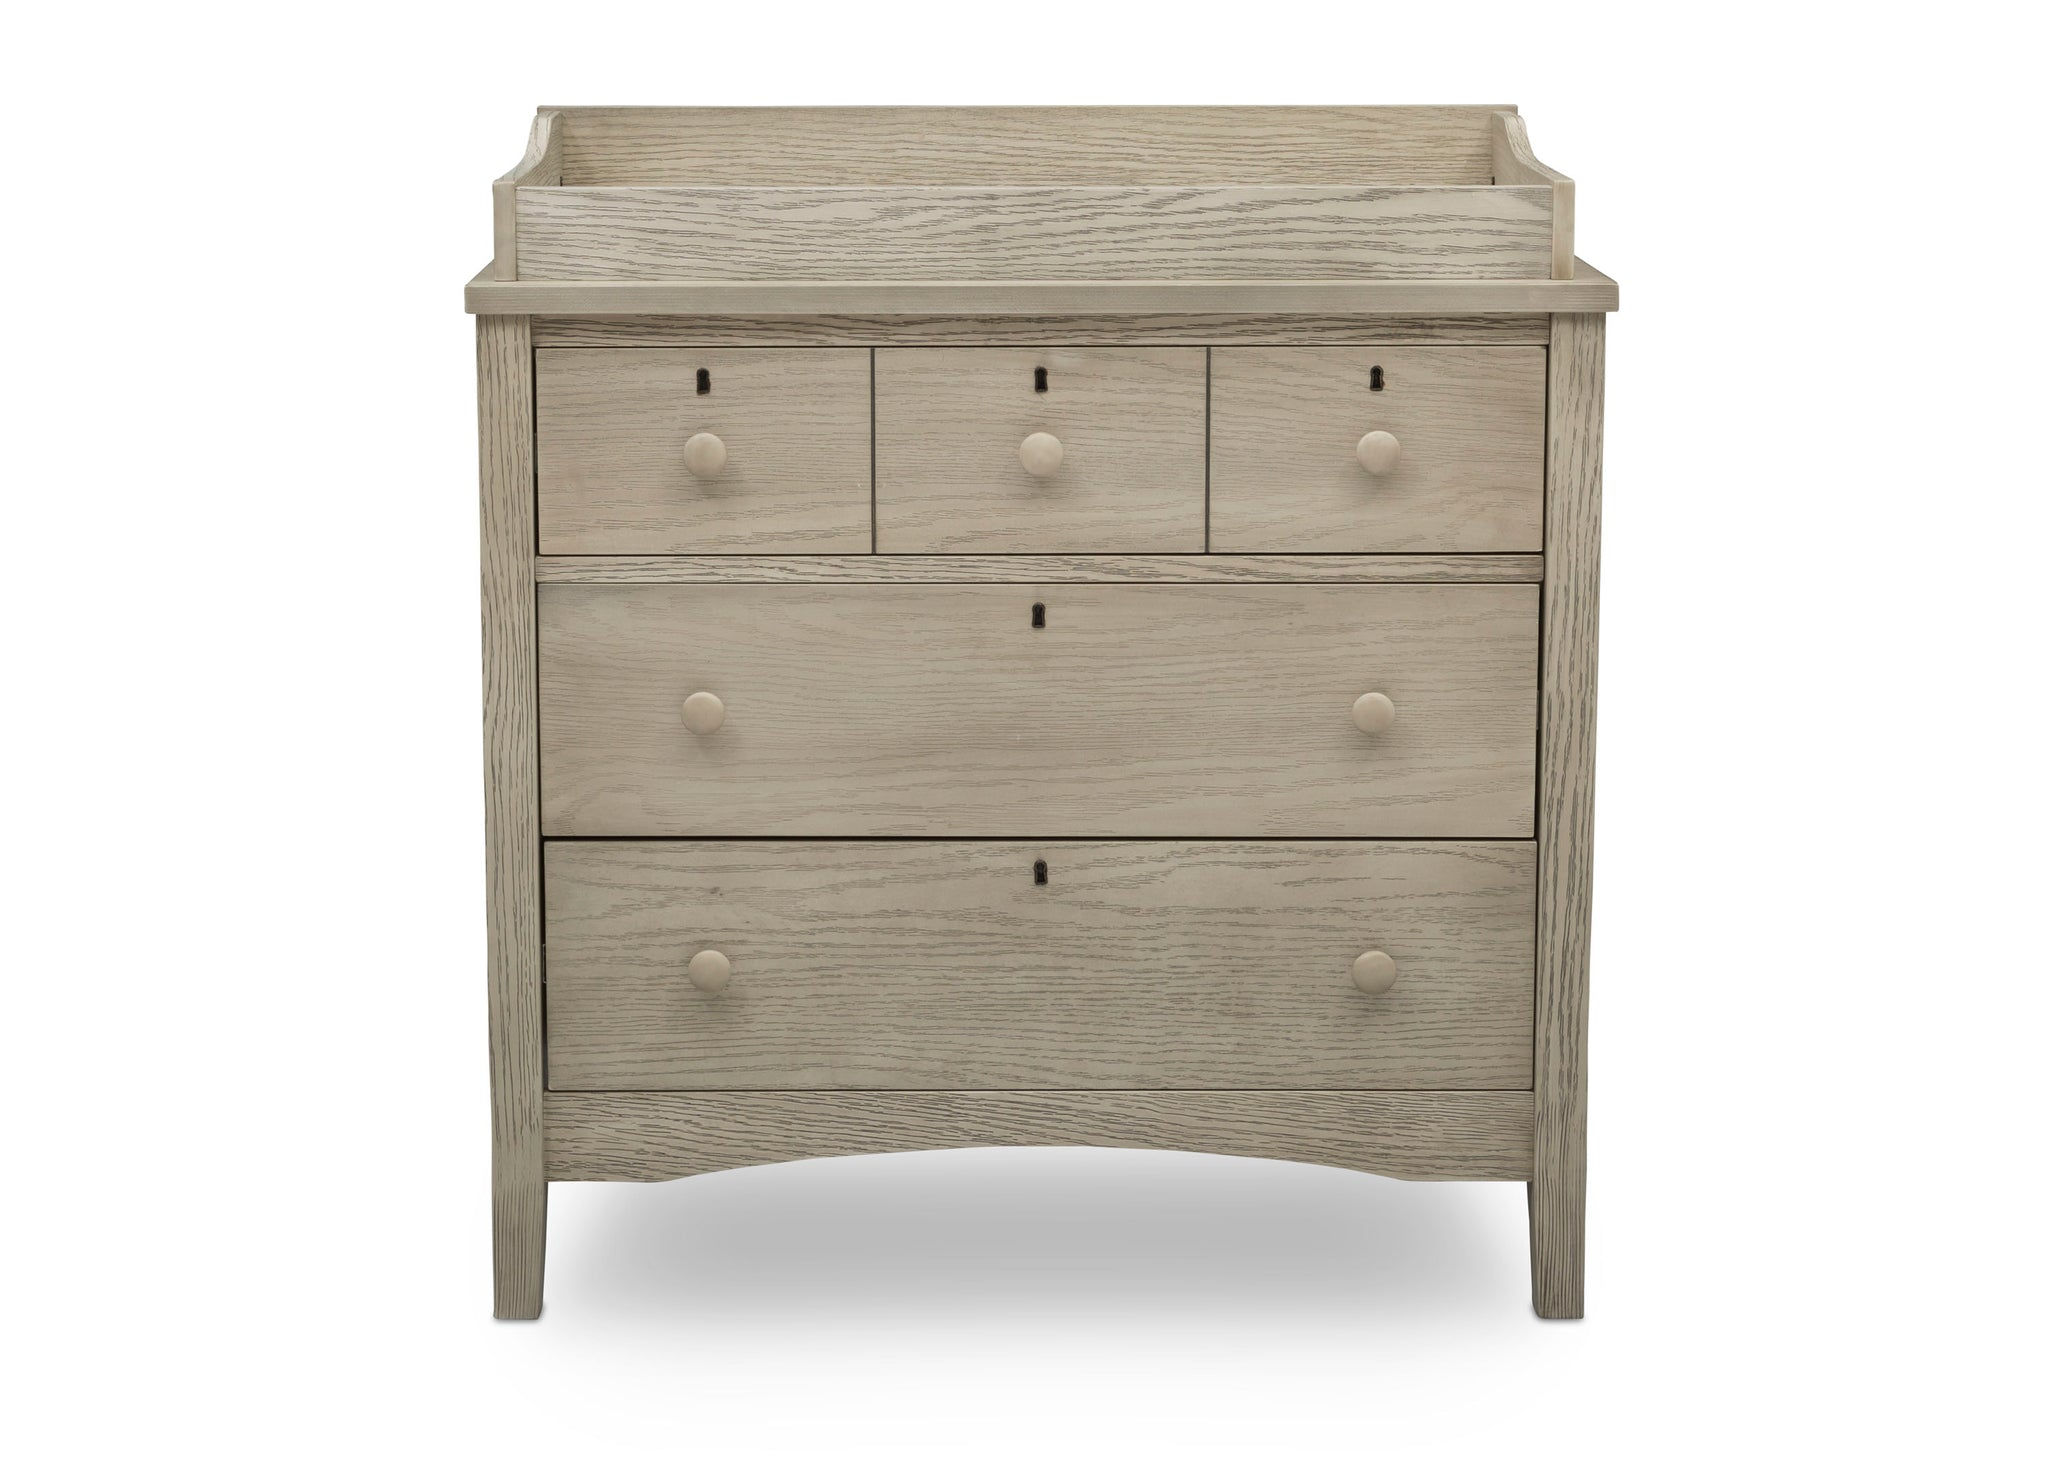 Delta Children Textured Limestone (1340) Farmhouse 3 Drawer Dresser with Changing Top, Front Silo View